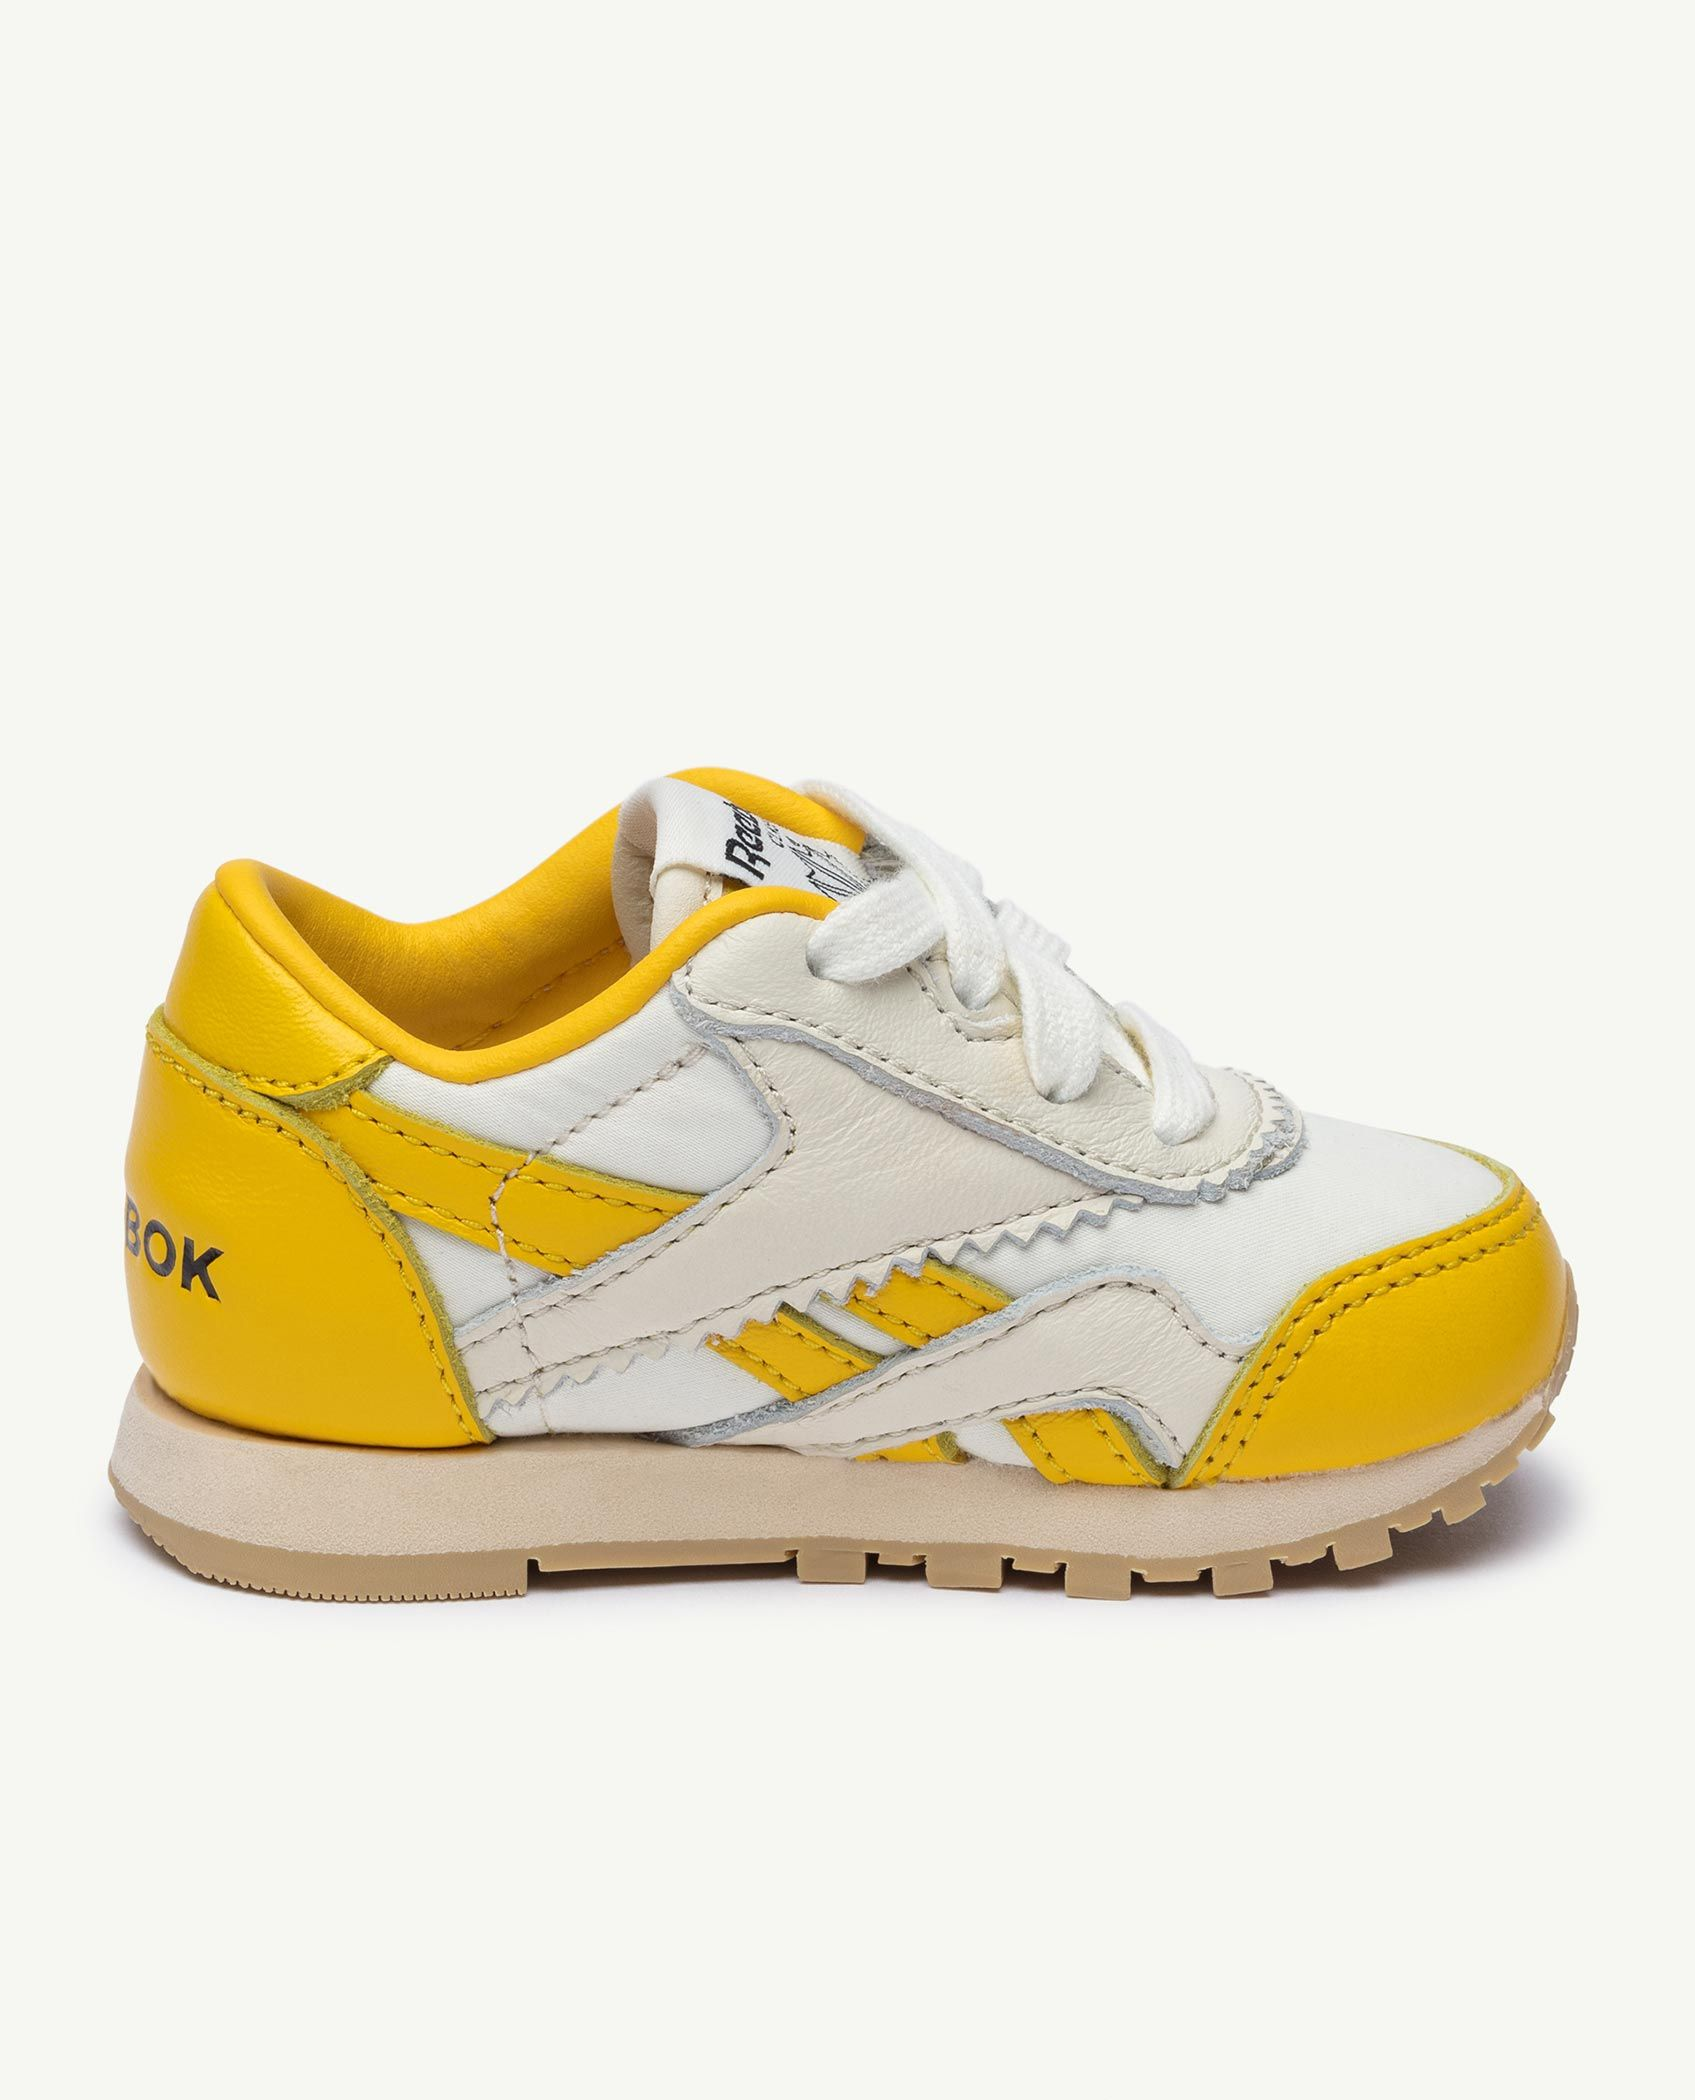 Reebok x The Animals Observatory Classic Nylon Yellow Baby img-2